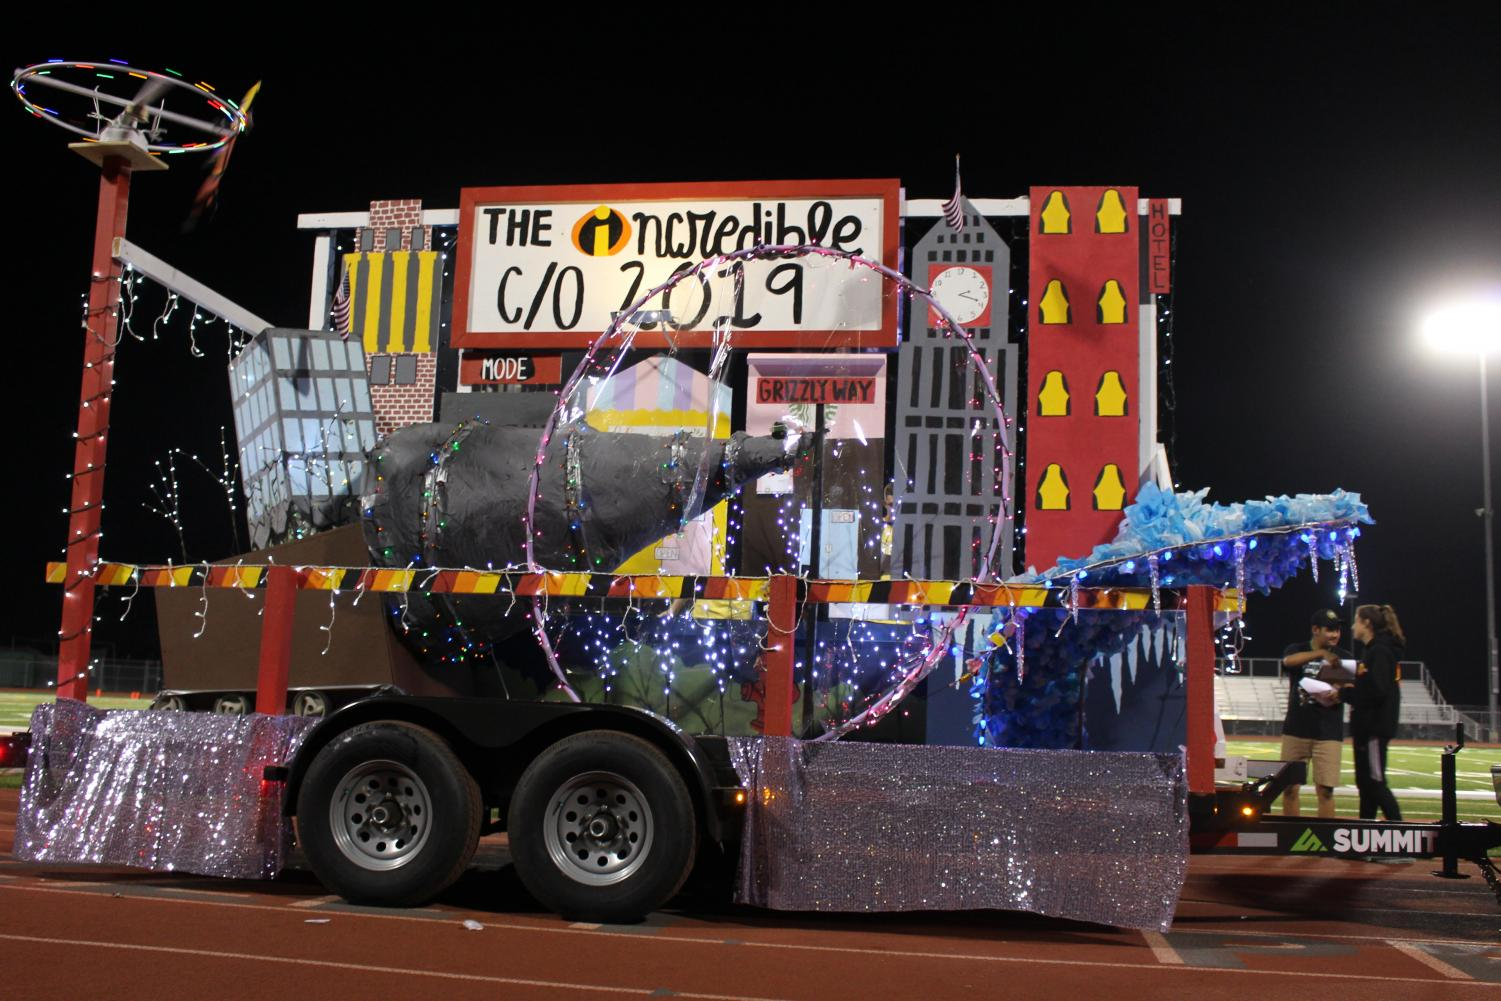 Homecoming floats like this senior float are organized by the student government.